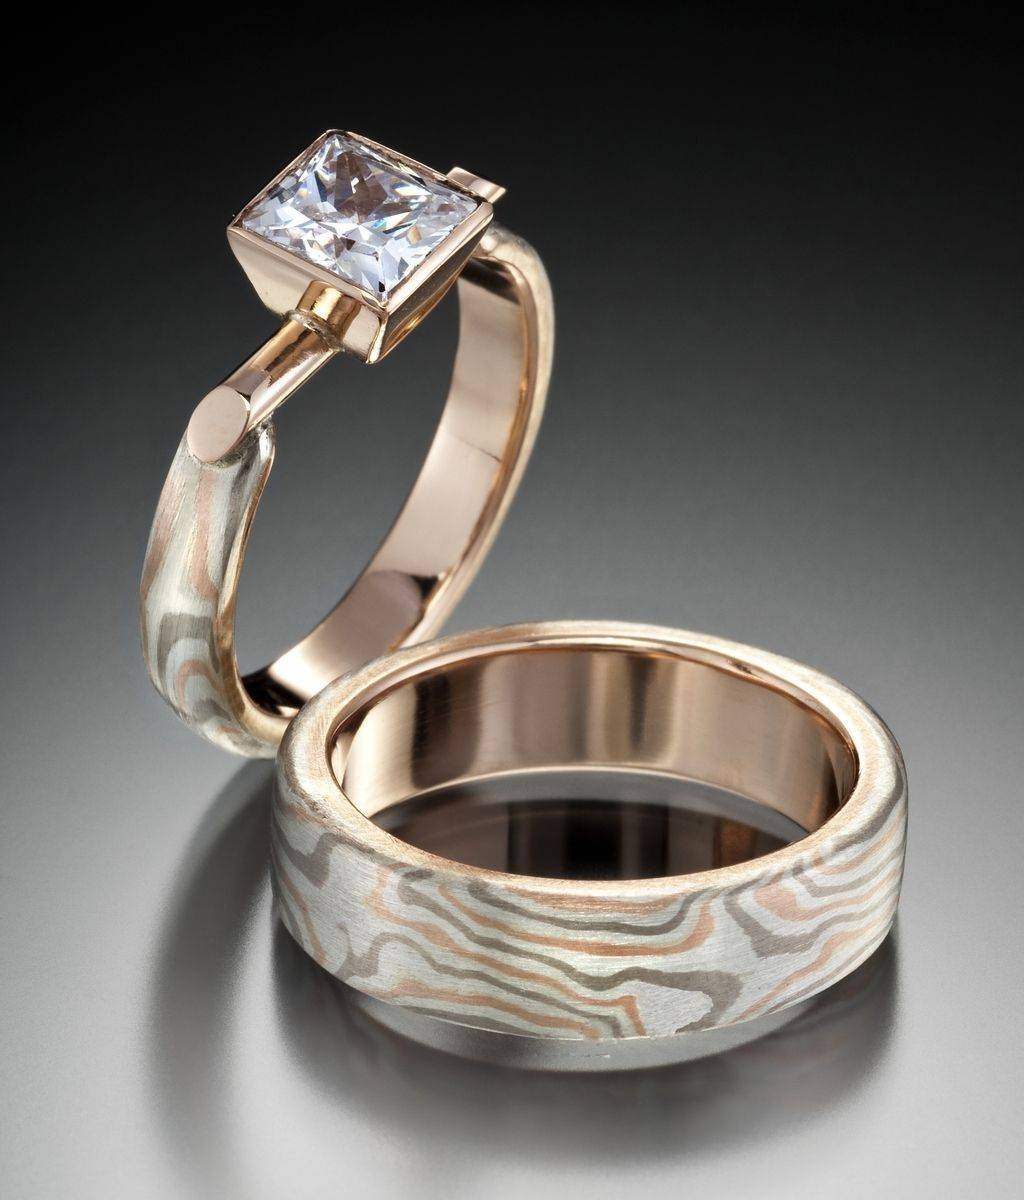 Custom Recycled Mokume Gane Wedding Set, Rolling Star Pattern With Regard To Mokume Gane Wedding Rings (View 12 of 15)